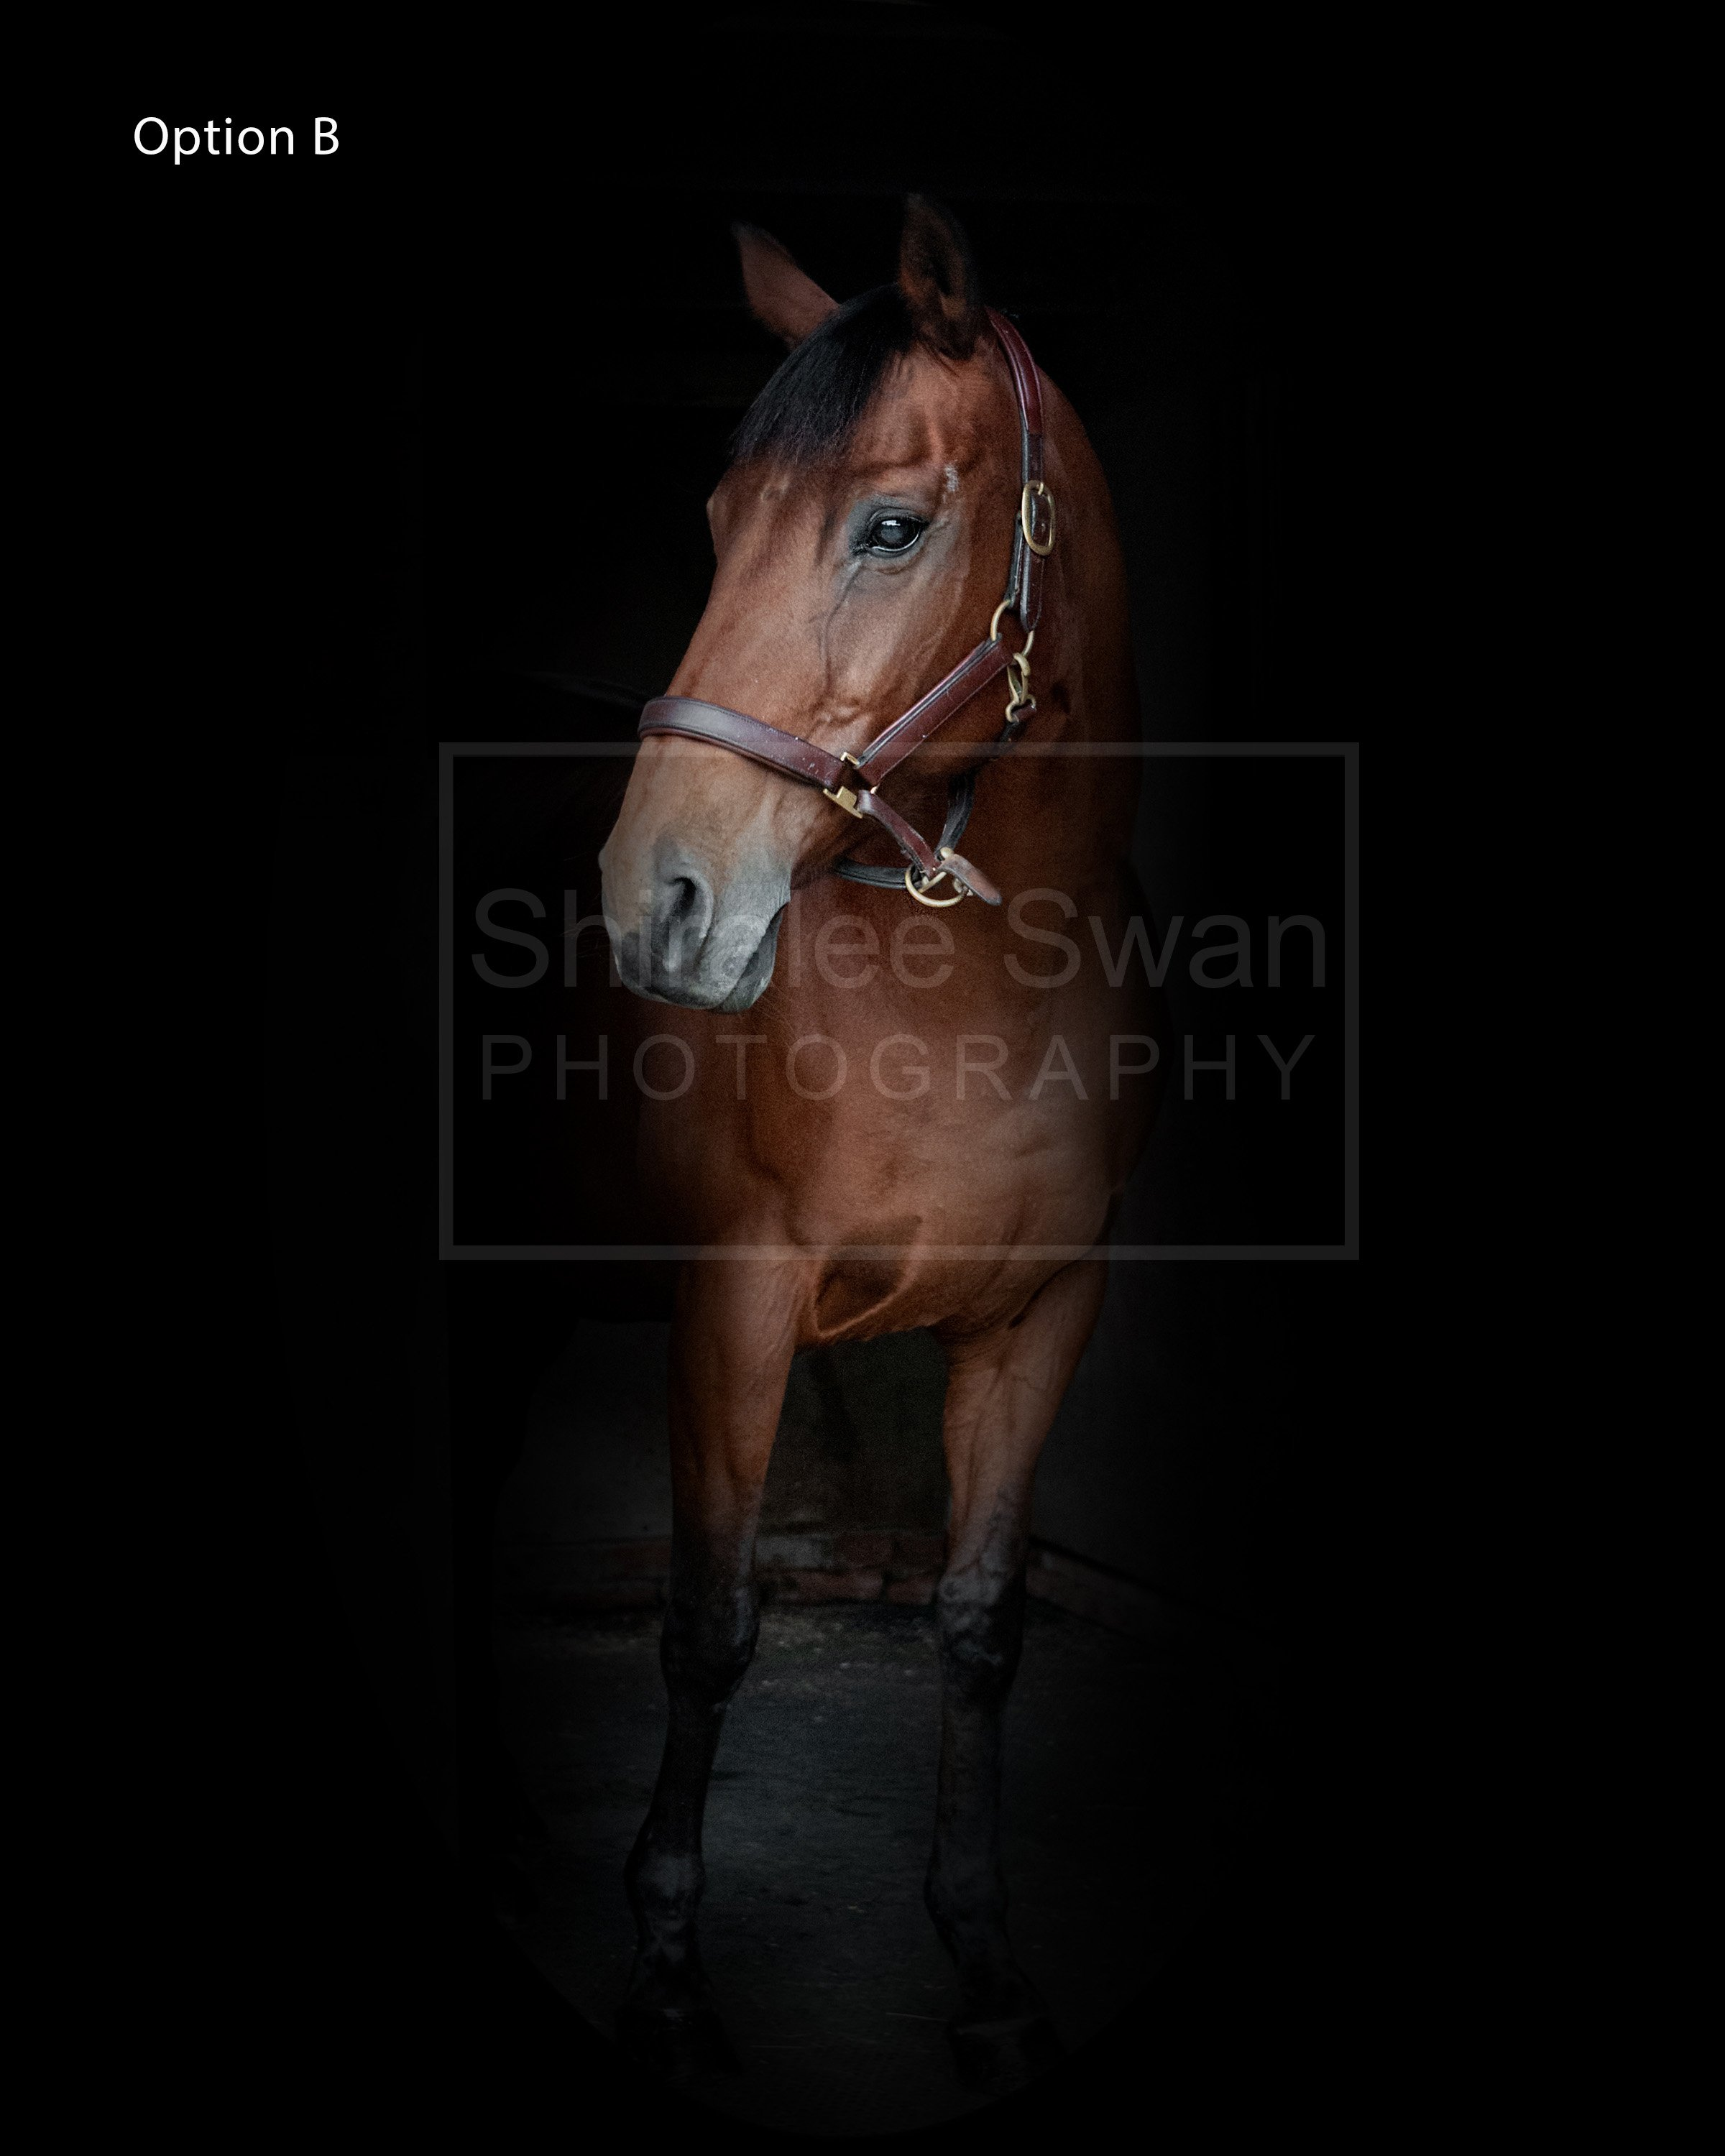 Equine Portrait option b